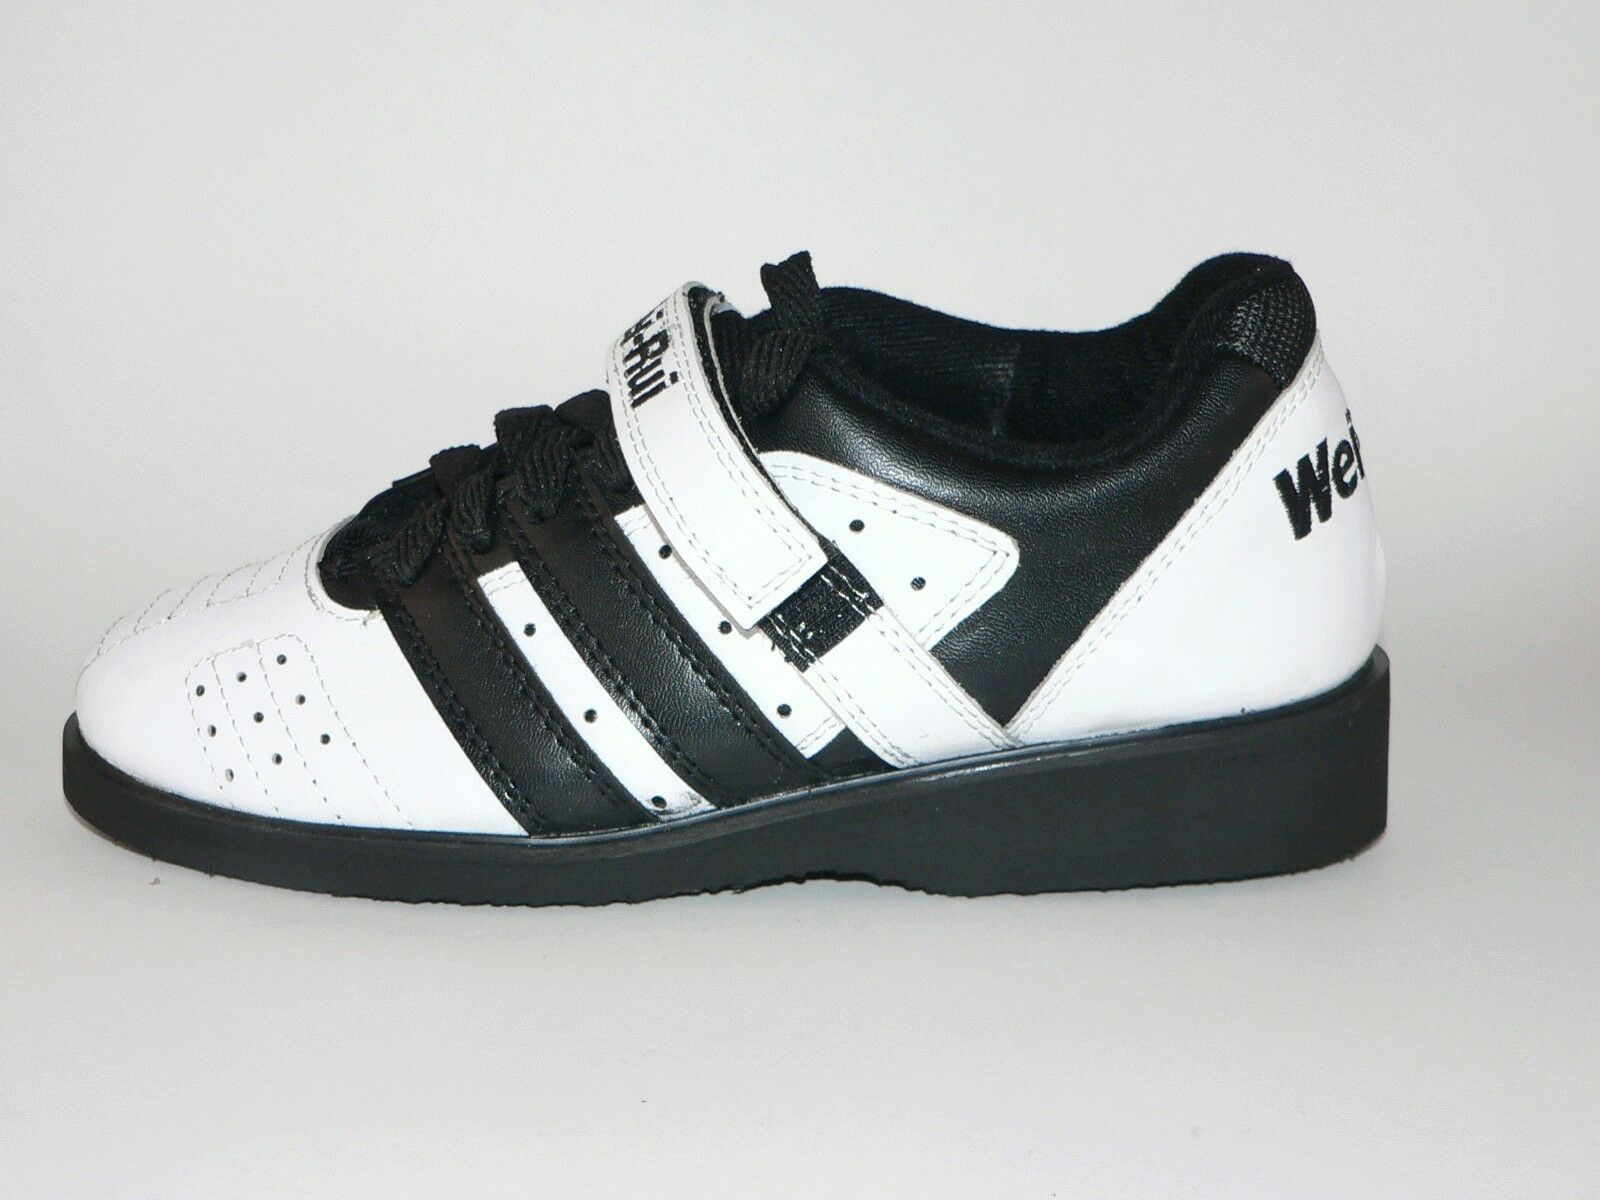 Wei-Rui Warrior weightlifting shoes - Size 40 EUR   7.5 US